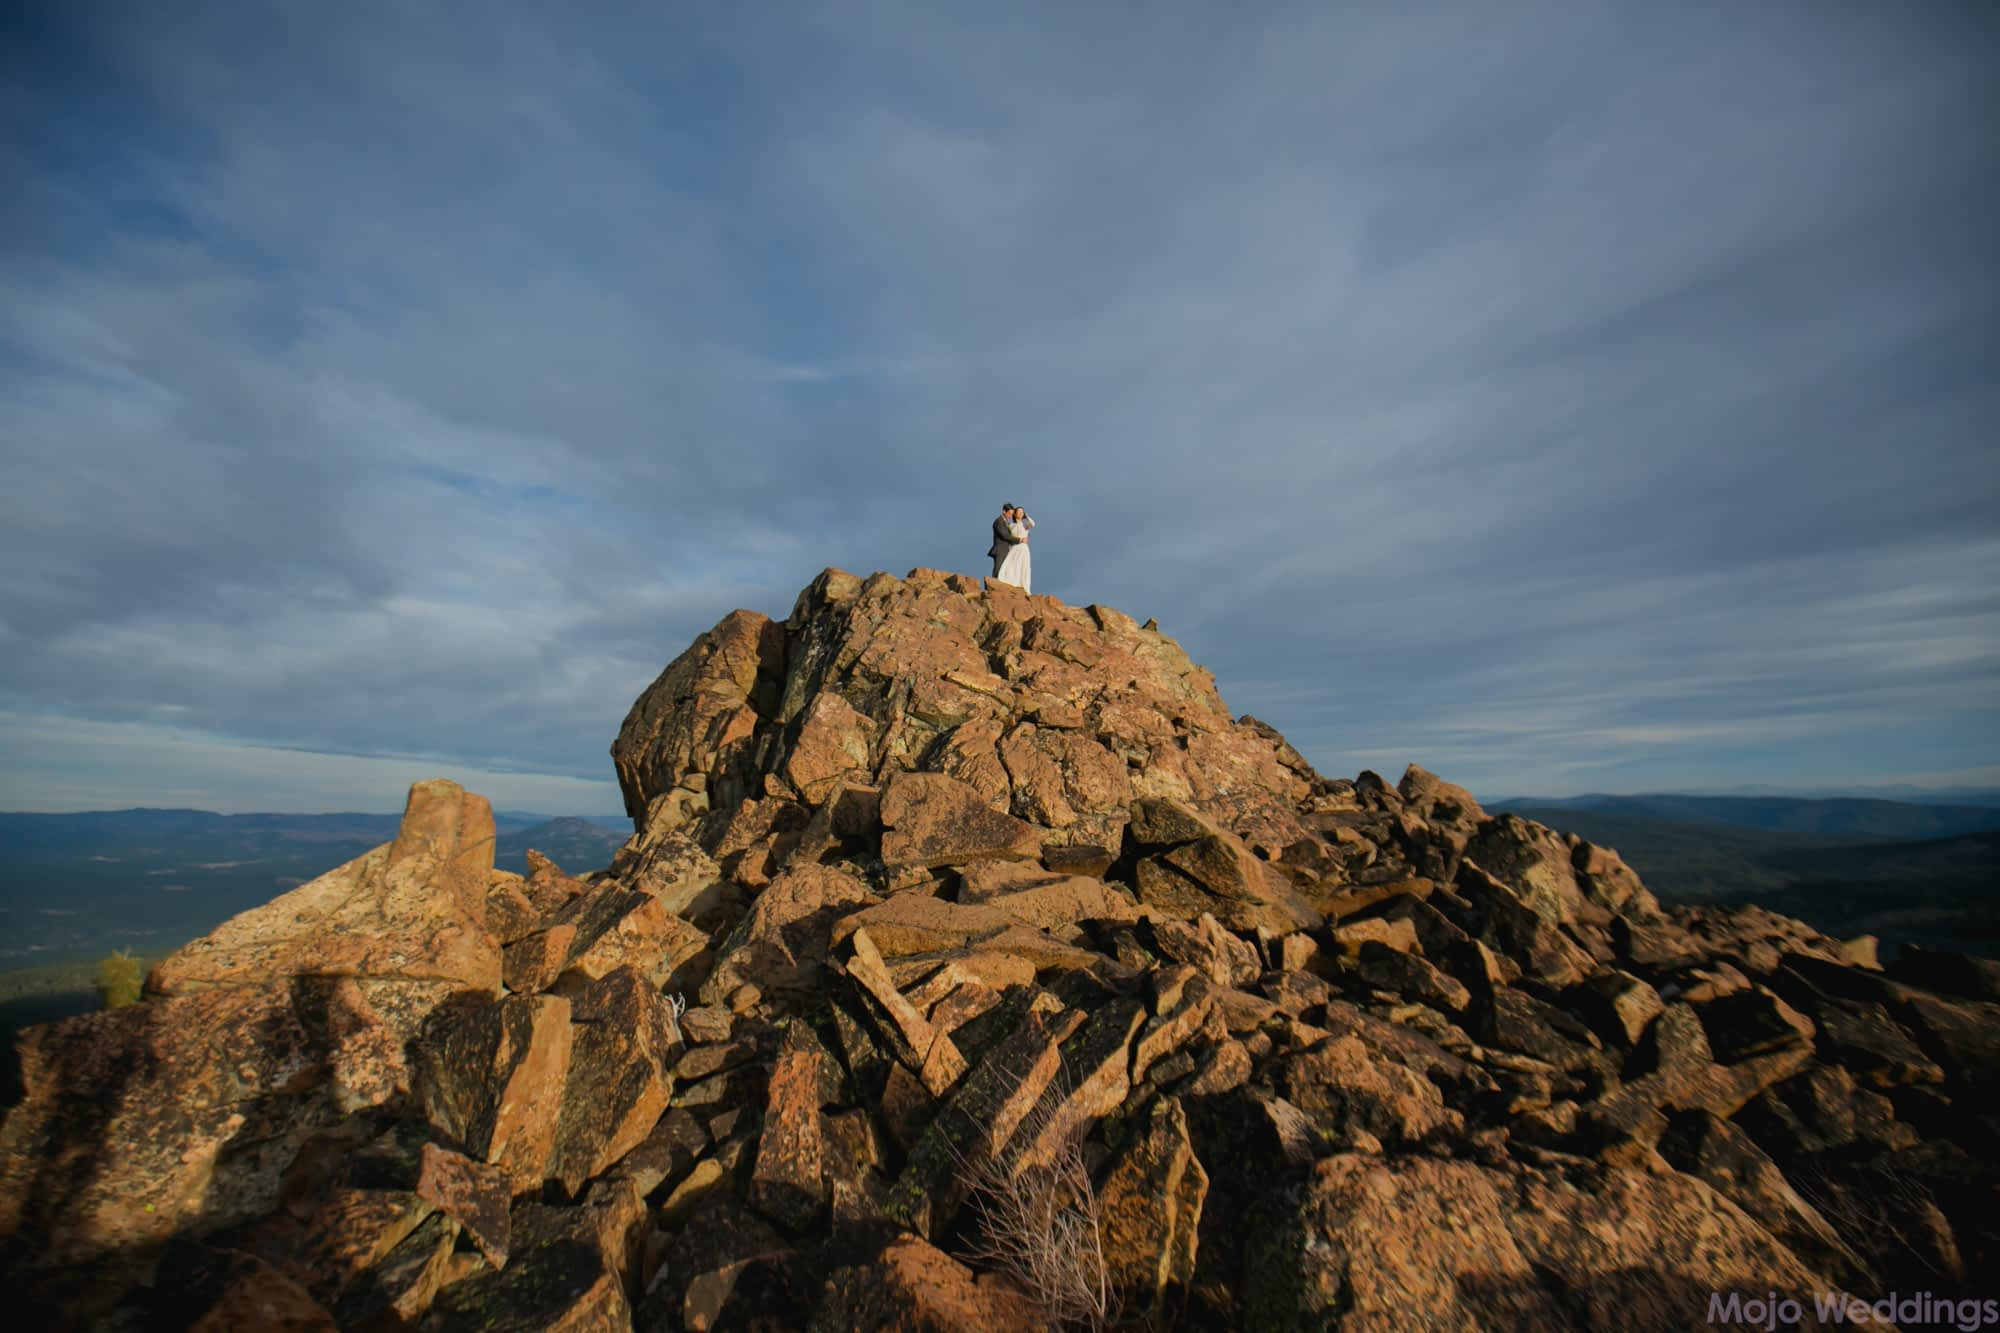 The bride and groom are small on top of a glowing orange rocky mountaintop with dark blue cloudy skies behind them.